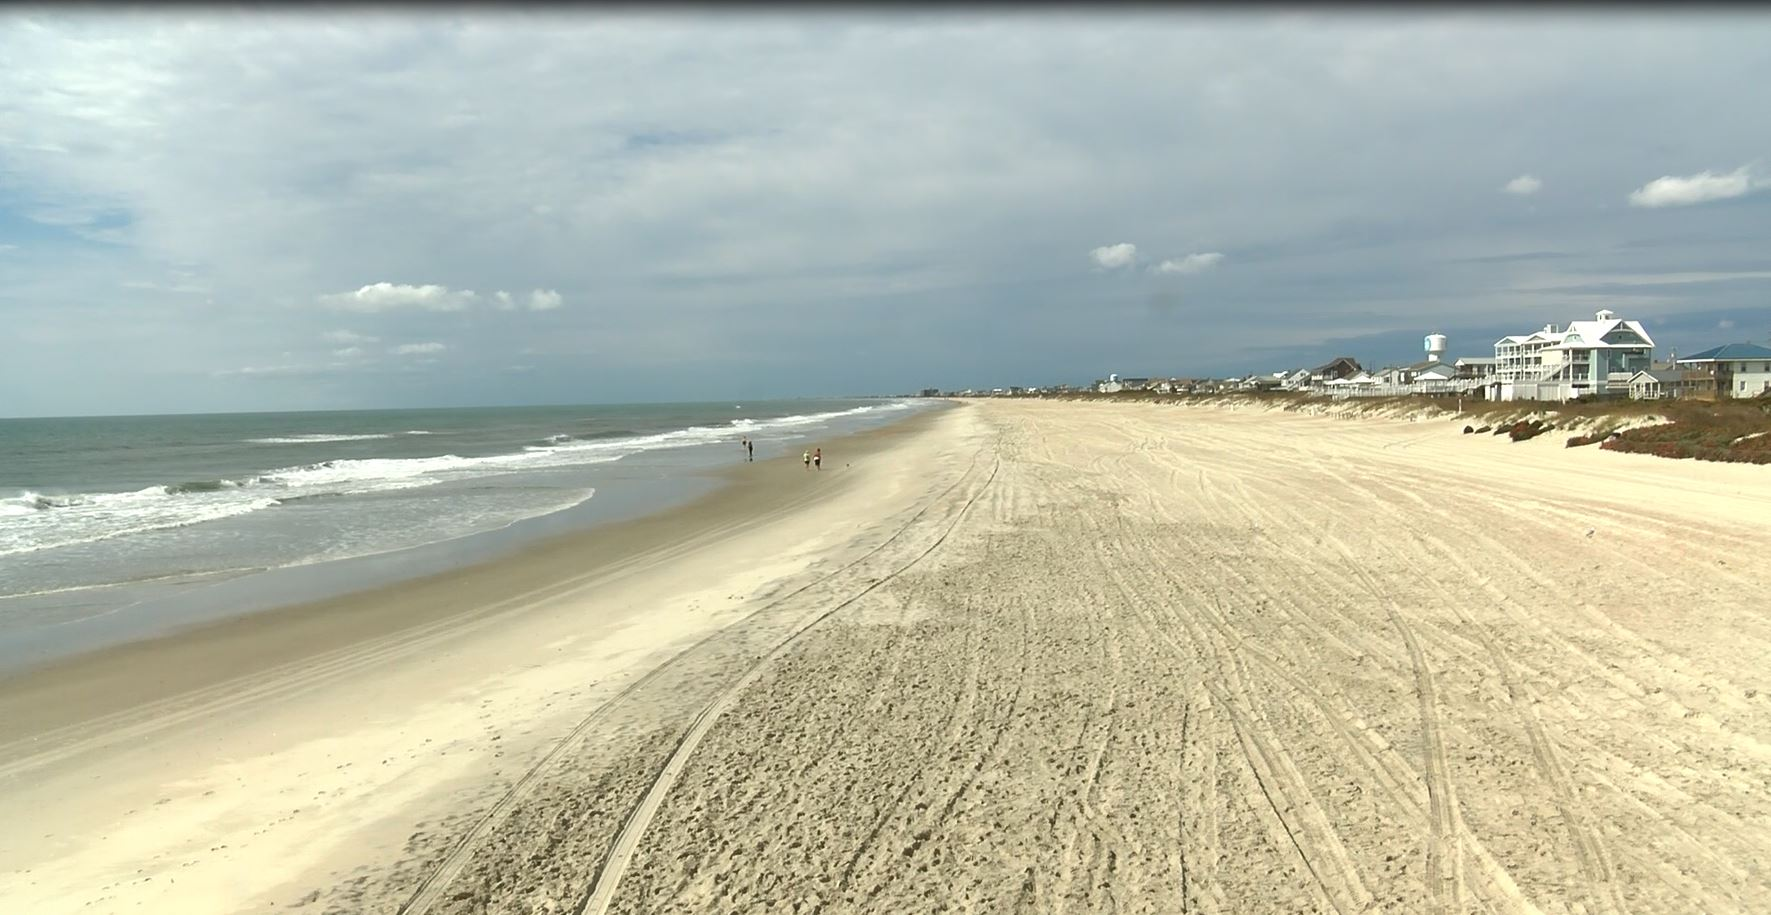 ATLANTIC BEACH_573104